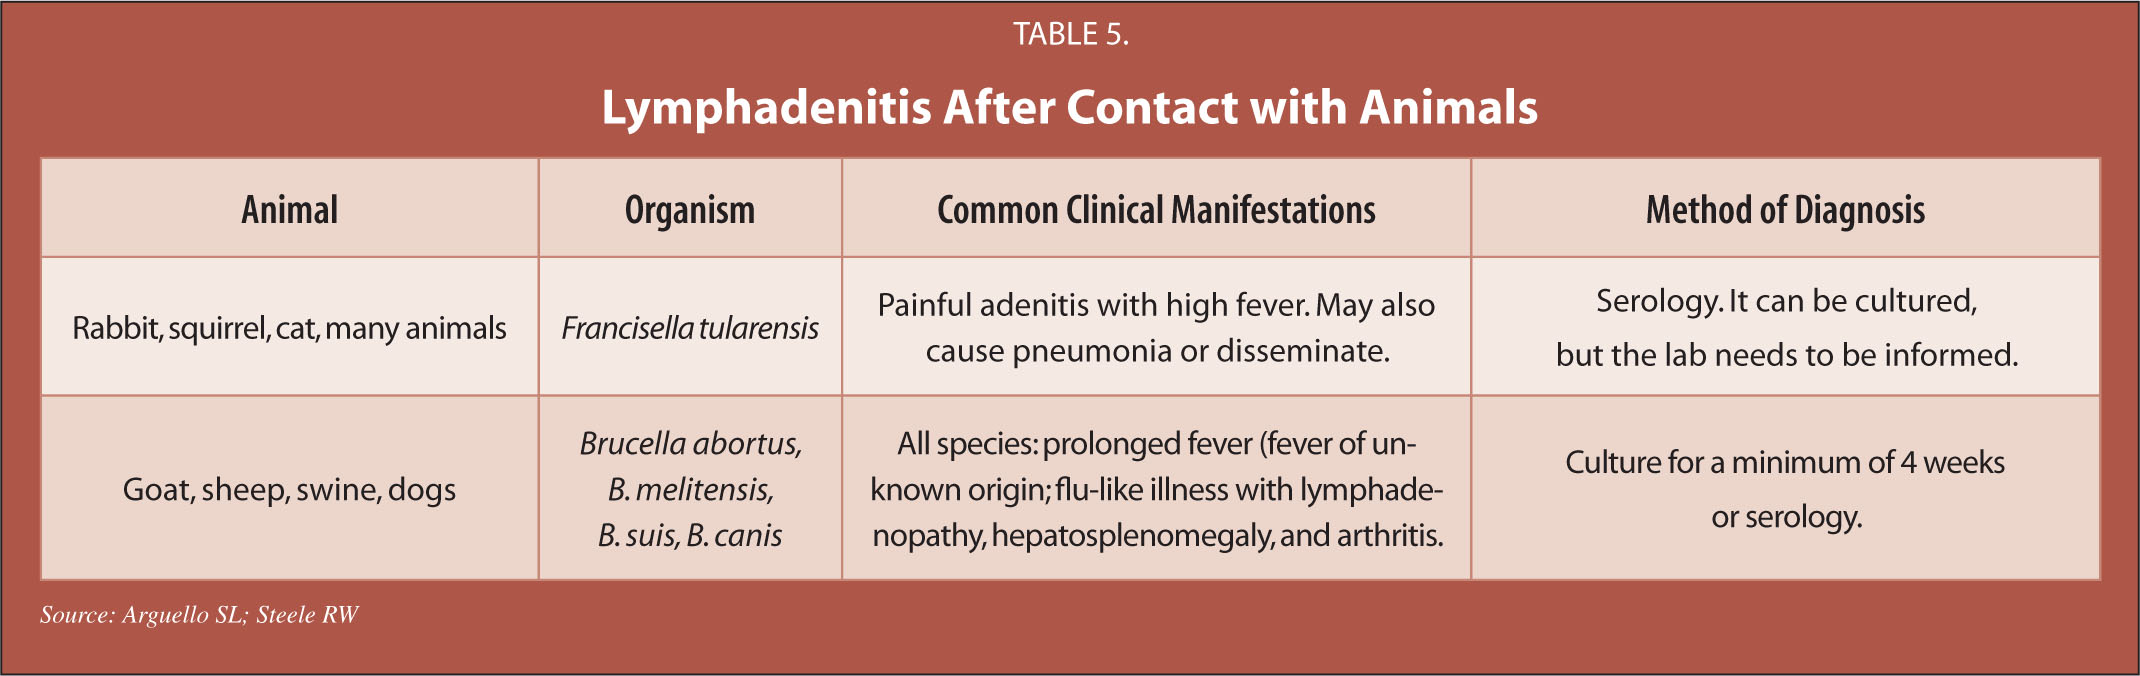 Lymphadenitis After Contact with Animals